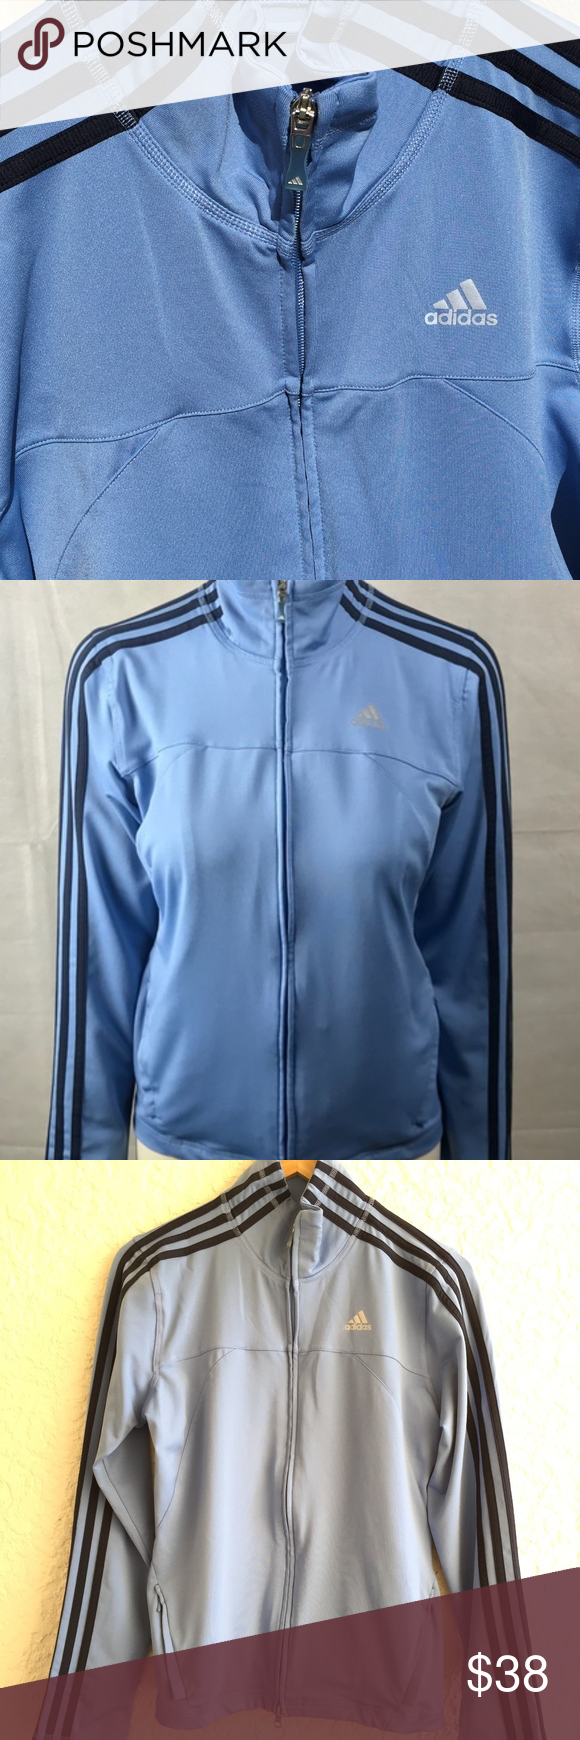 Adidas Classic Women S Track Jacket Size Medium Adidas Classic Women S Track Jacket Size Medium Preloved In Great Adidas Classic Clothes Design Track Jackets [ 1740 x 580 Pixel ]